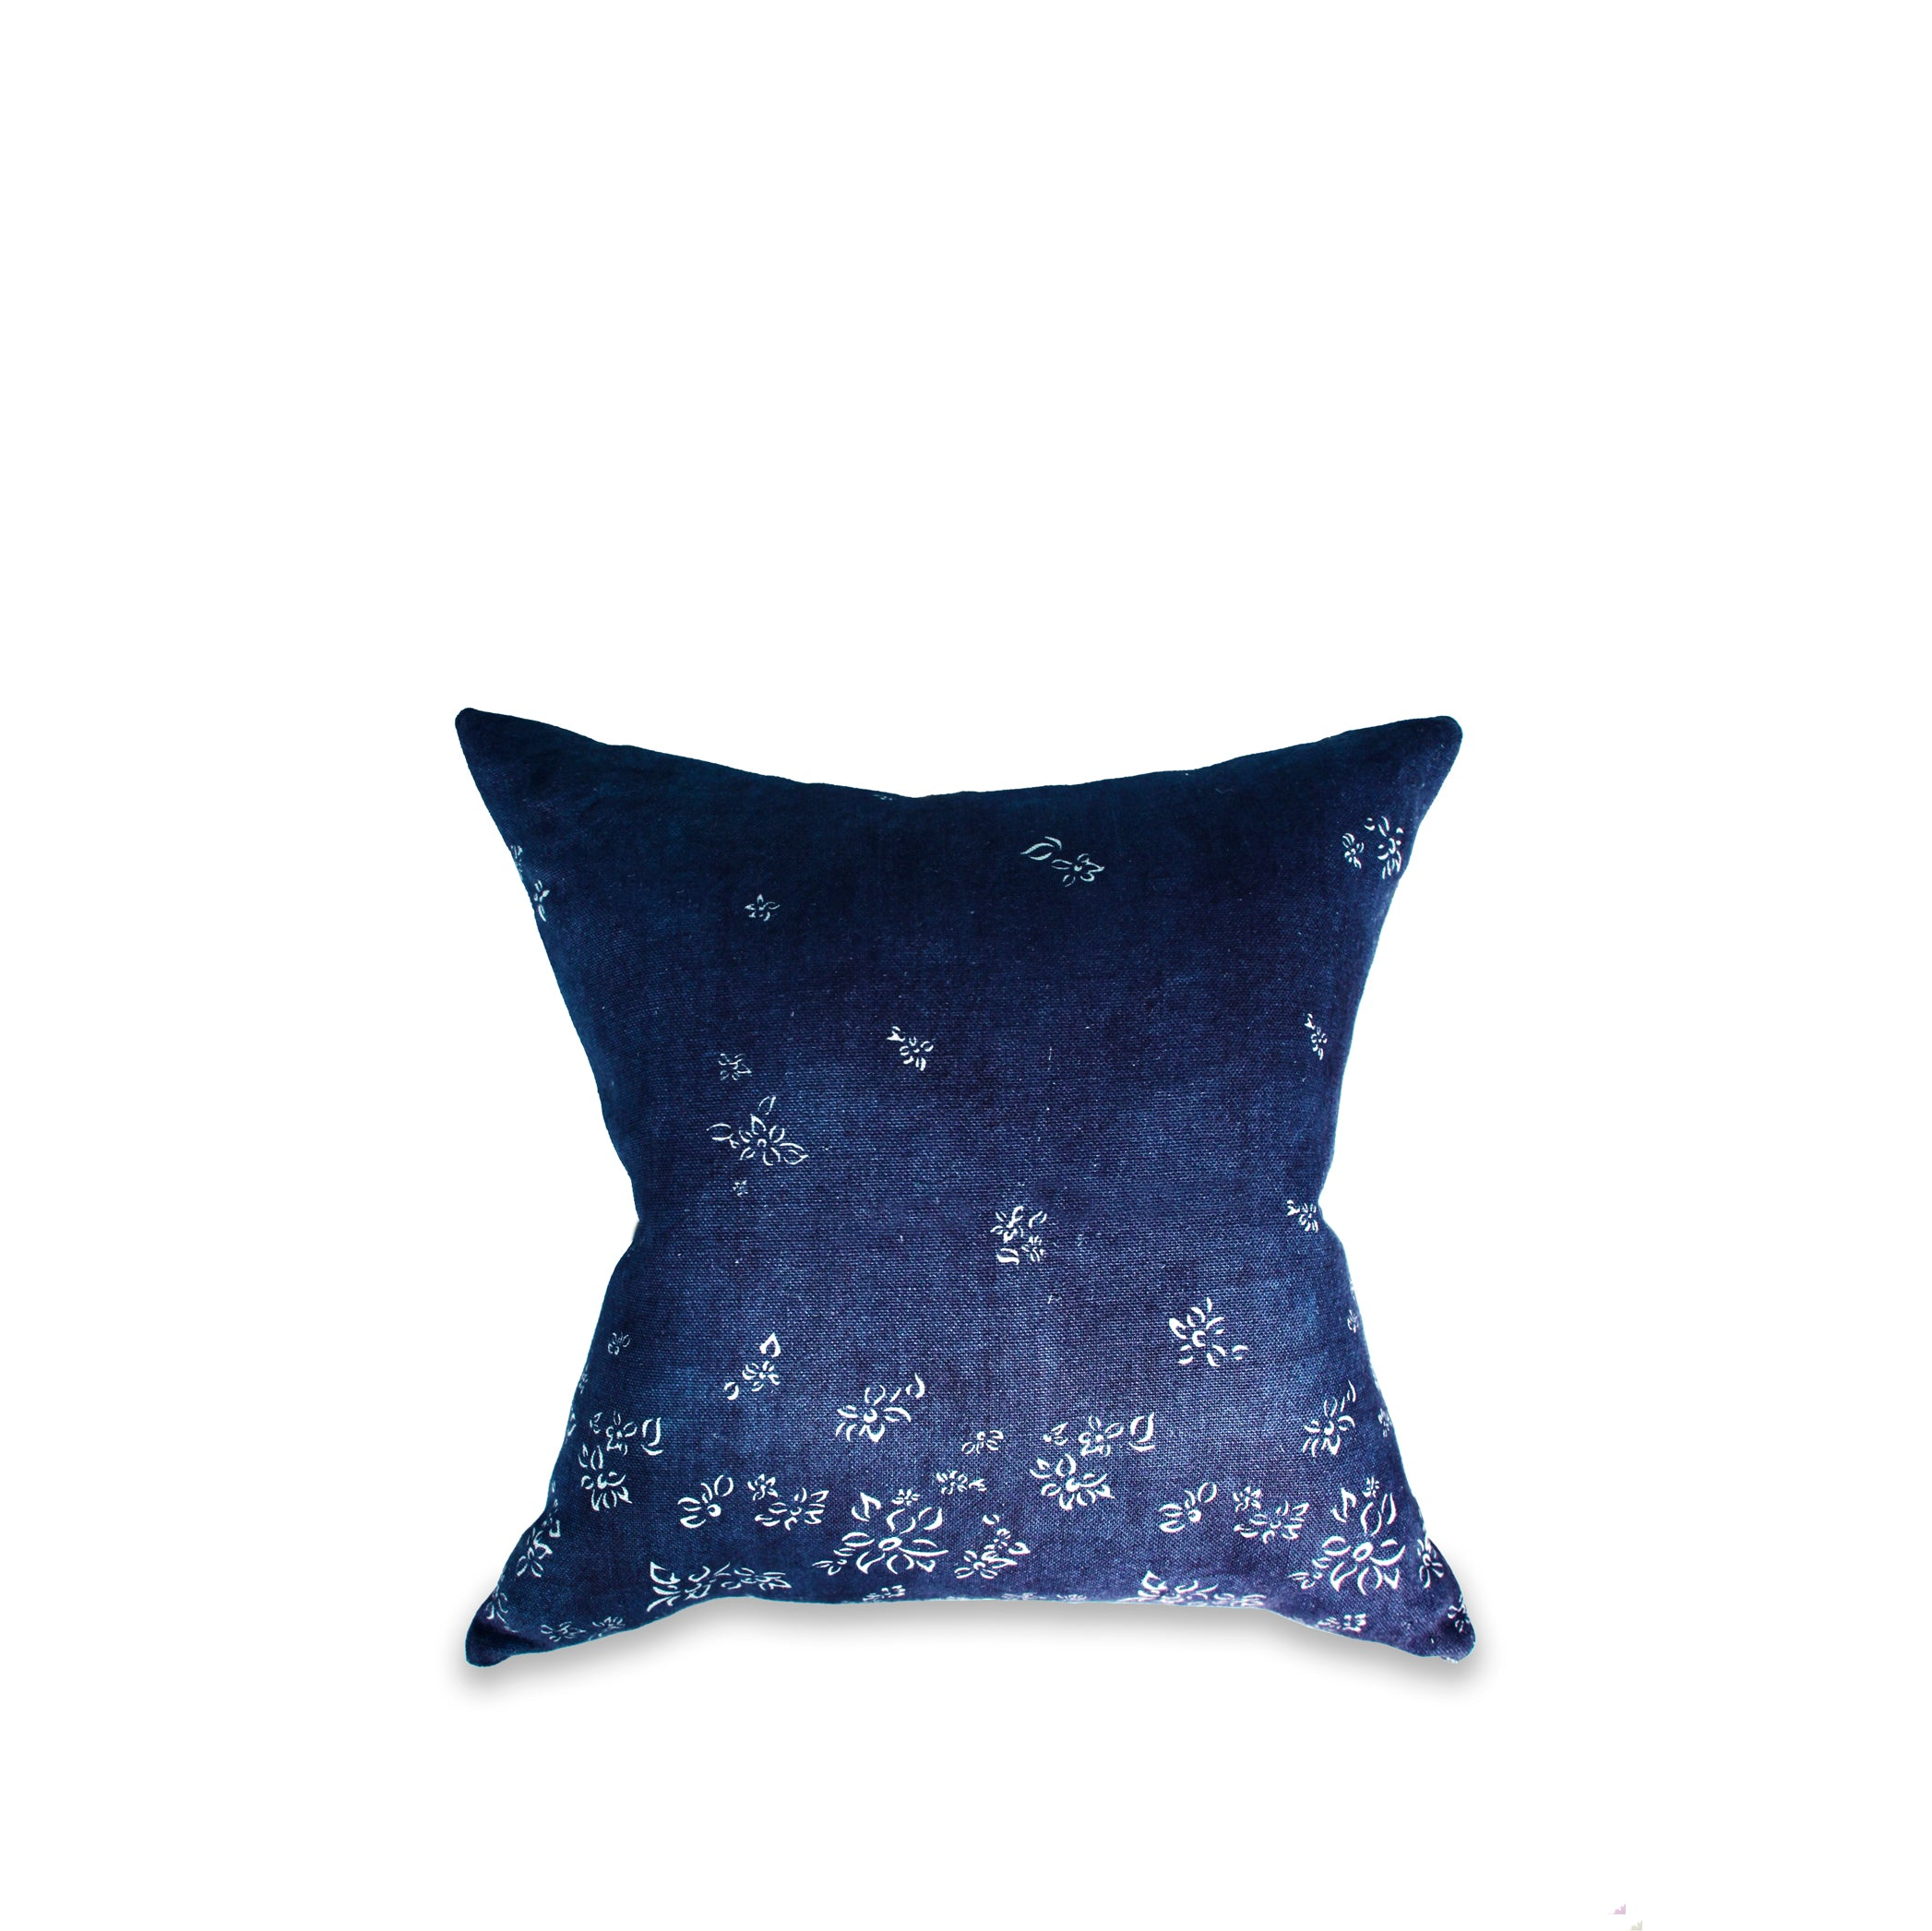 Heavy Linen Falling Flower Cushion in Full Field Midnight Blue, 50cm x 50cm